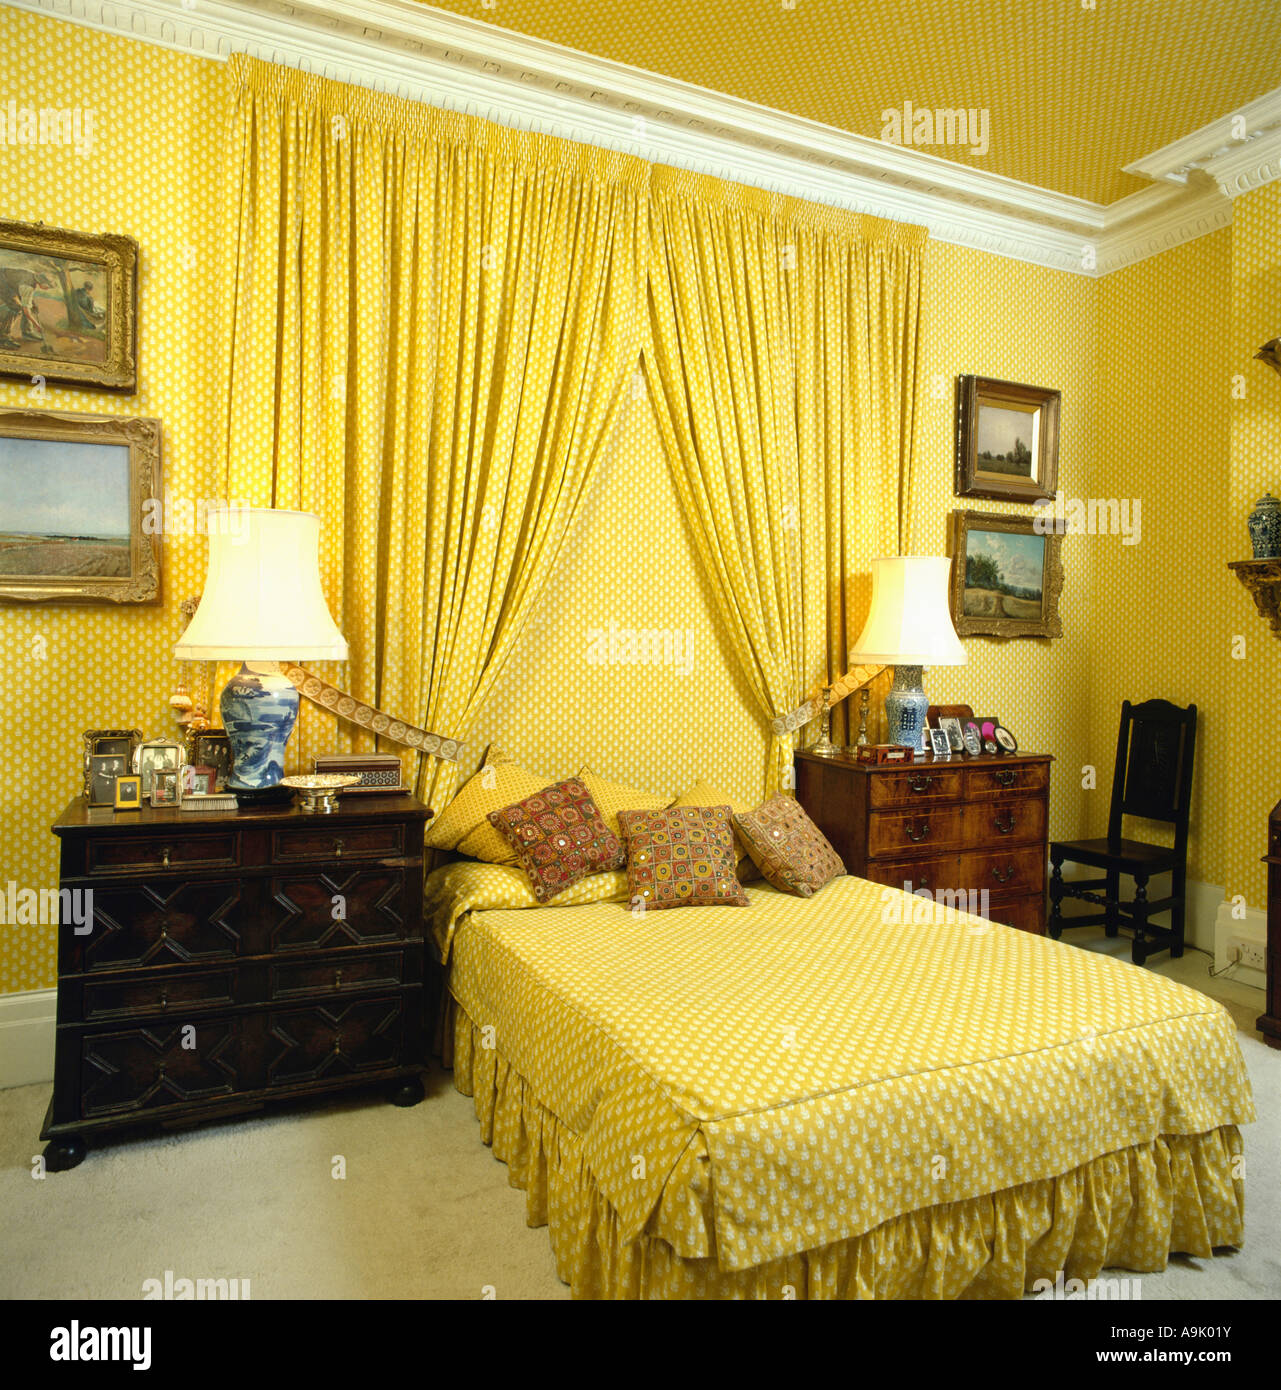 Yellow curtains on wall behind bed with yellow bedlinen in ...